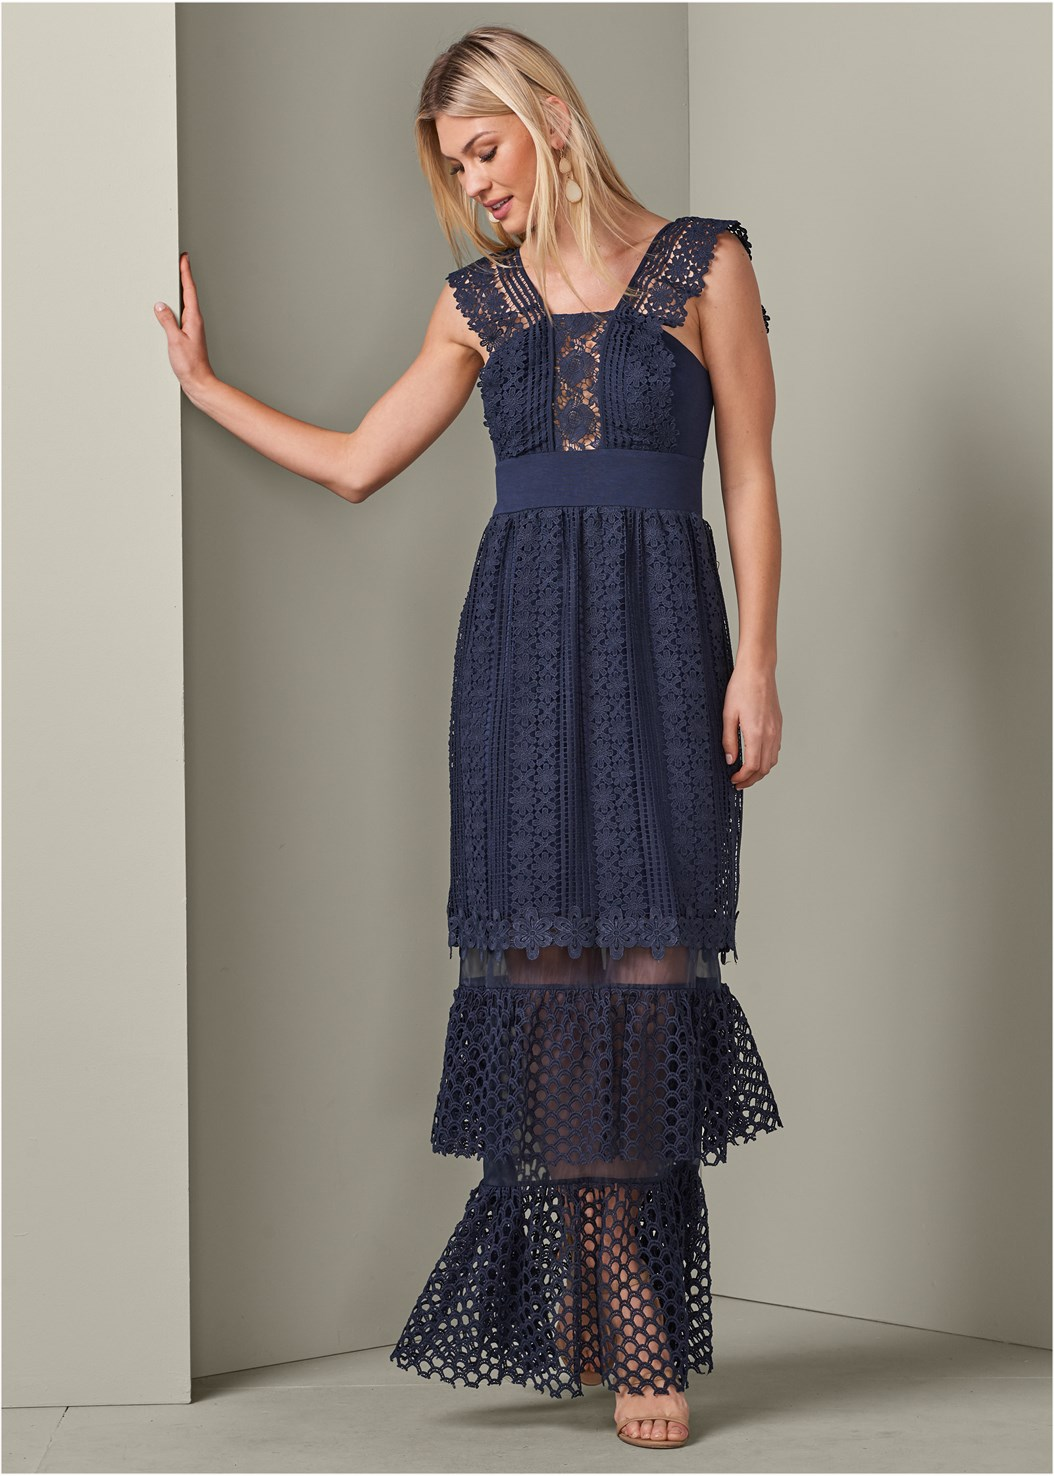 Tiered Lace Evening Dress,High Heel Strappy Sandals